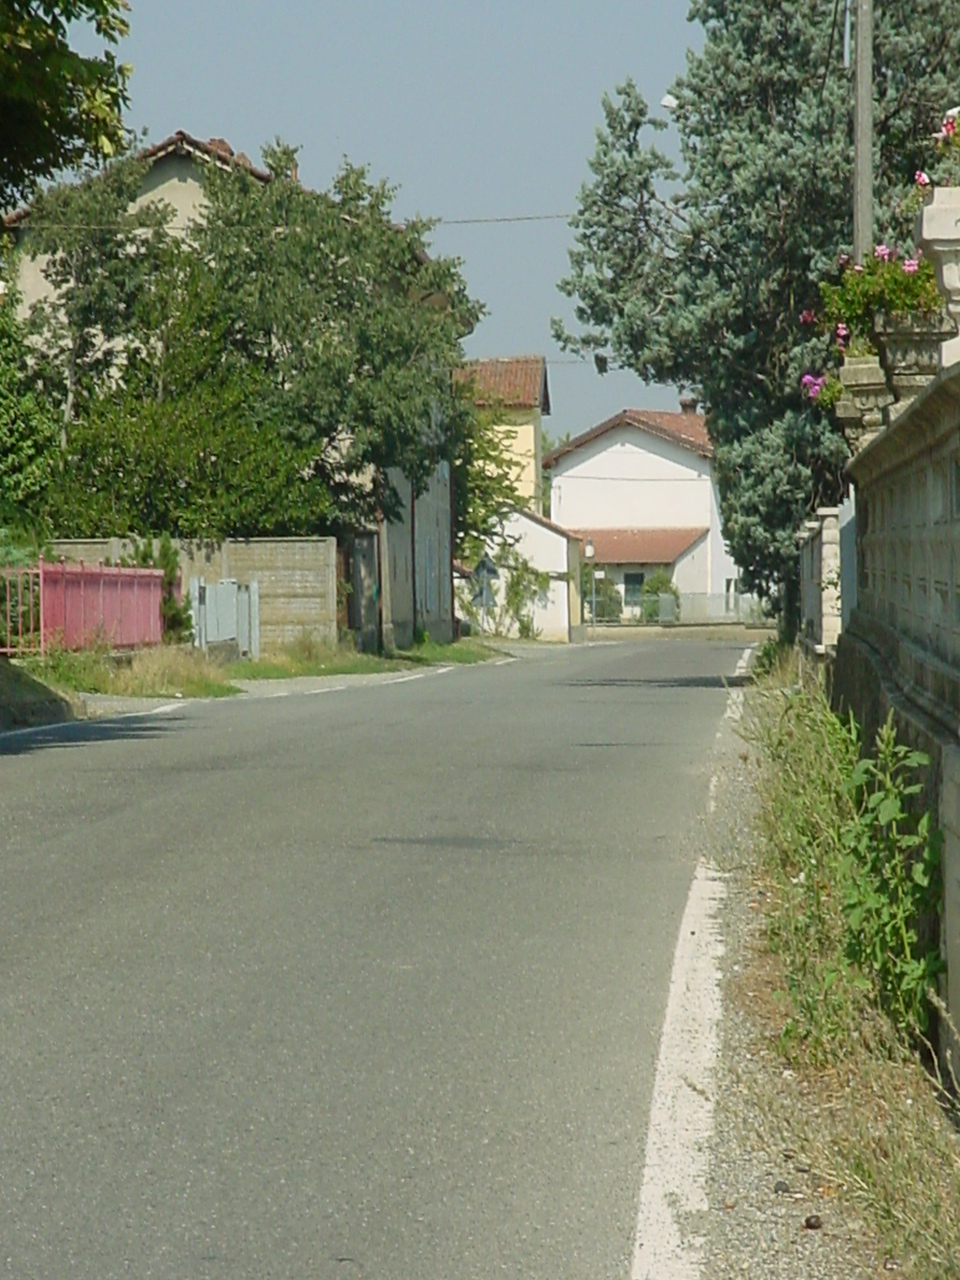 VIA BOSCO MARENGO